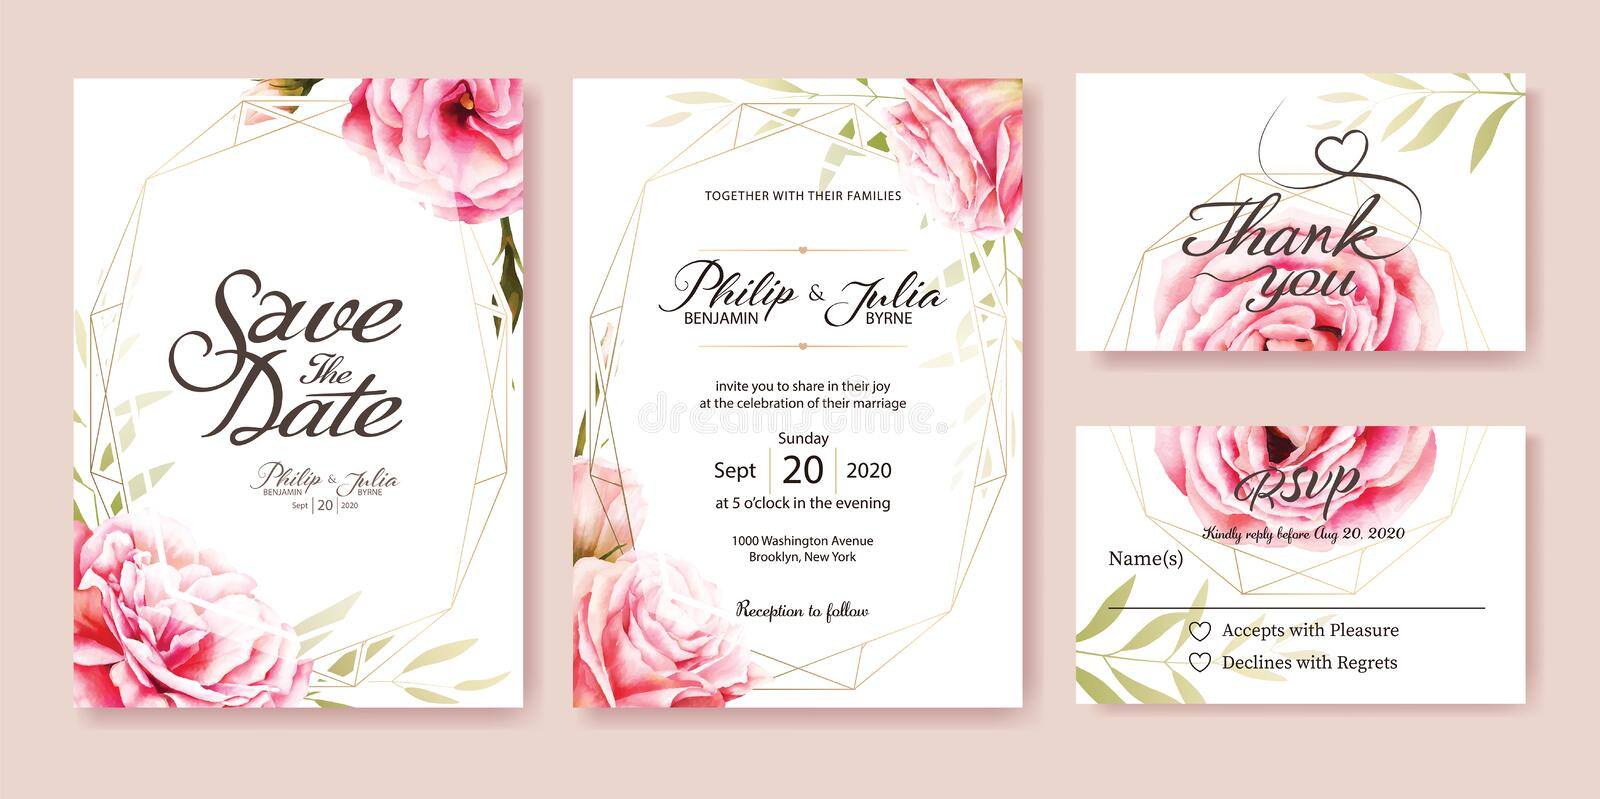 Invitation de mariage de rose de rose Type d'aquarelle Vecteur illustration stock